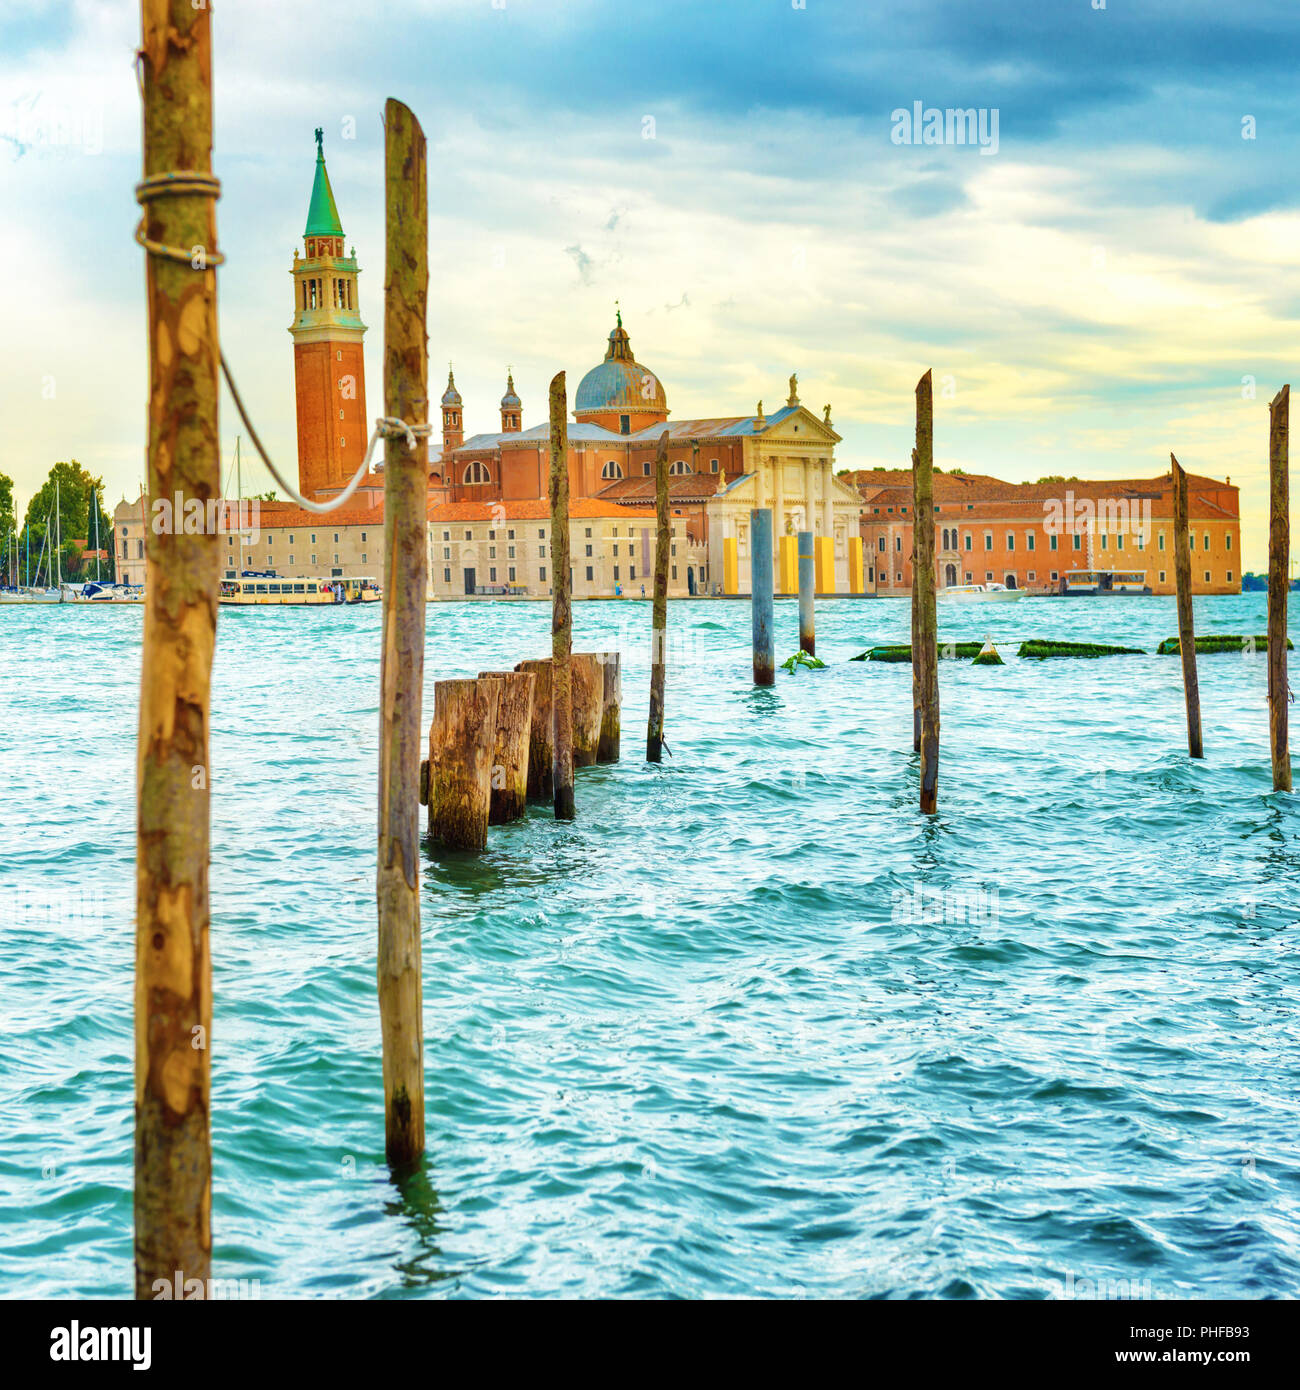 Moorage for gondolas with wooden poles - Stock Image